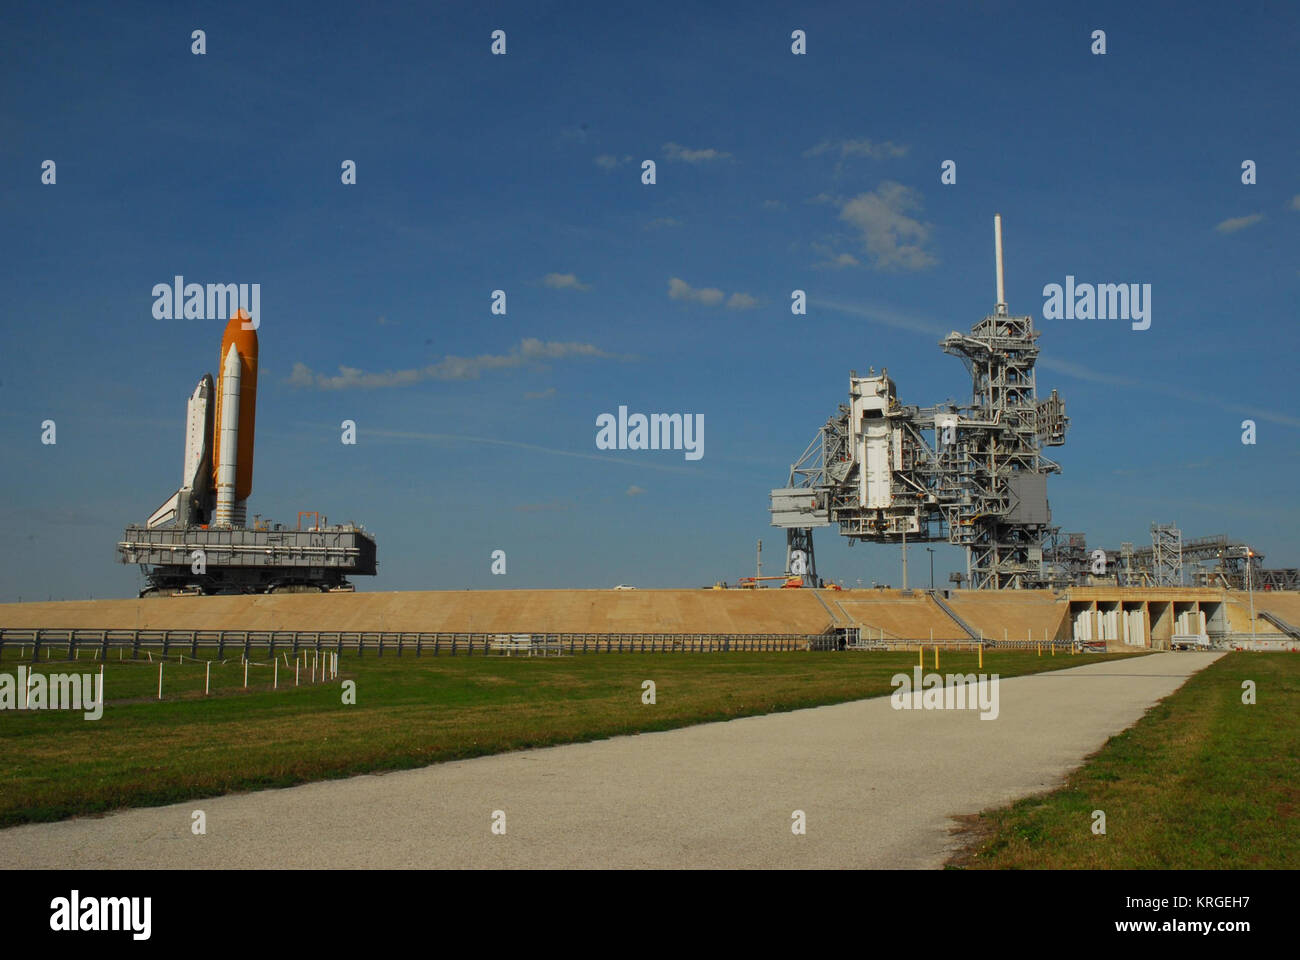 STS-117 rollback1 - Stock Image